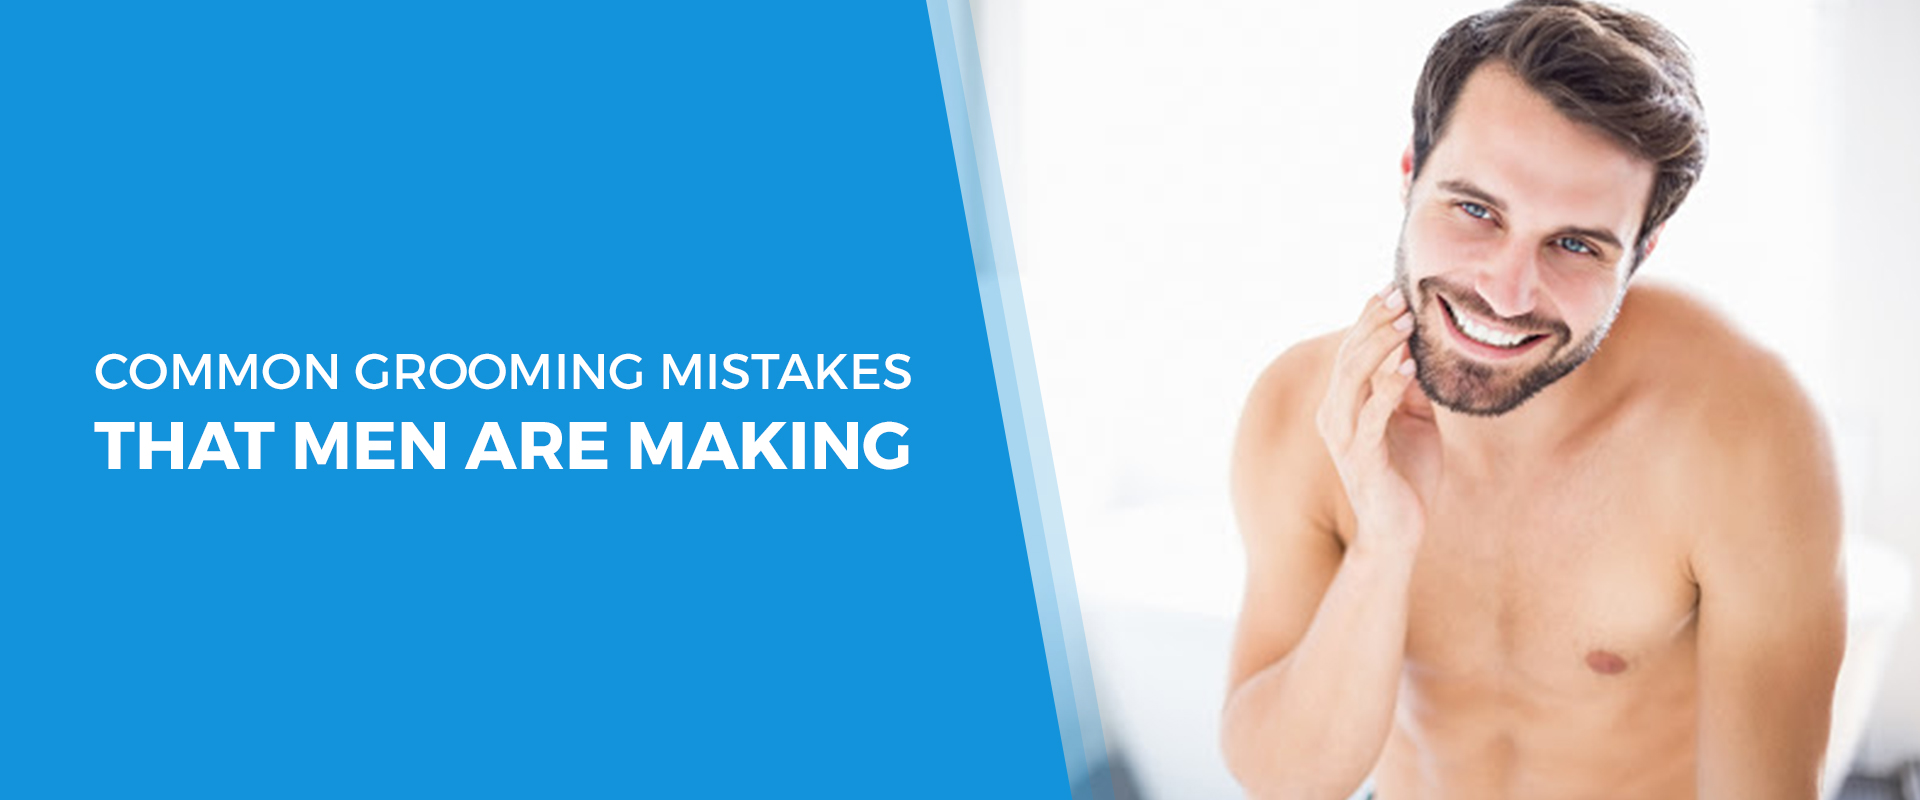 Grooming Mistakes